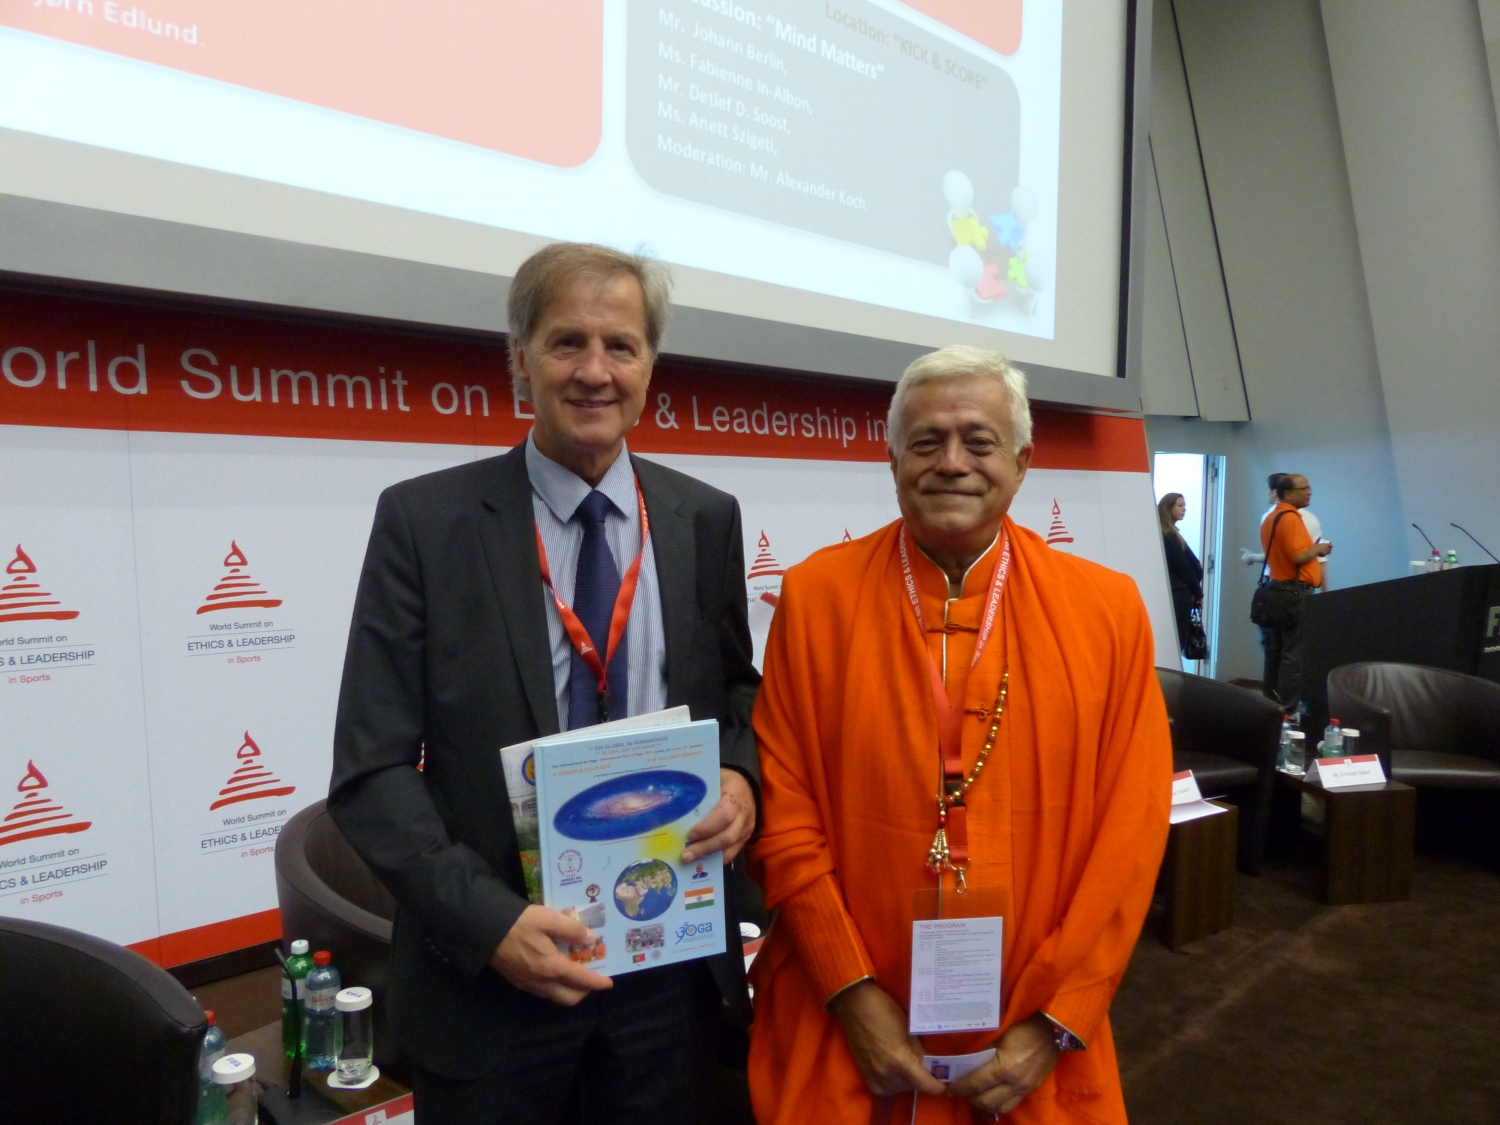 H.H. Jagat Guru Amrta Súryánanda Mahá Rája with Mr. Jo Leinen, Member of the European Parliament and Member of the Board of the World Forum for Ethics in Business